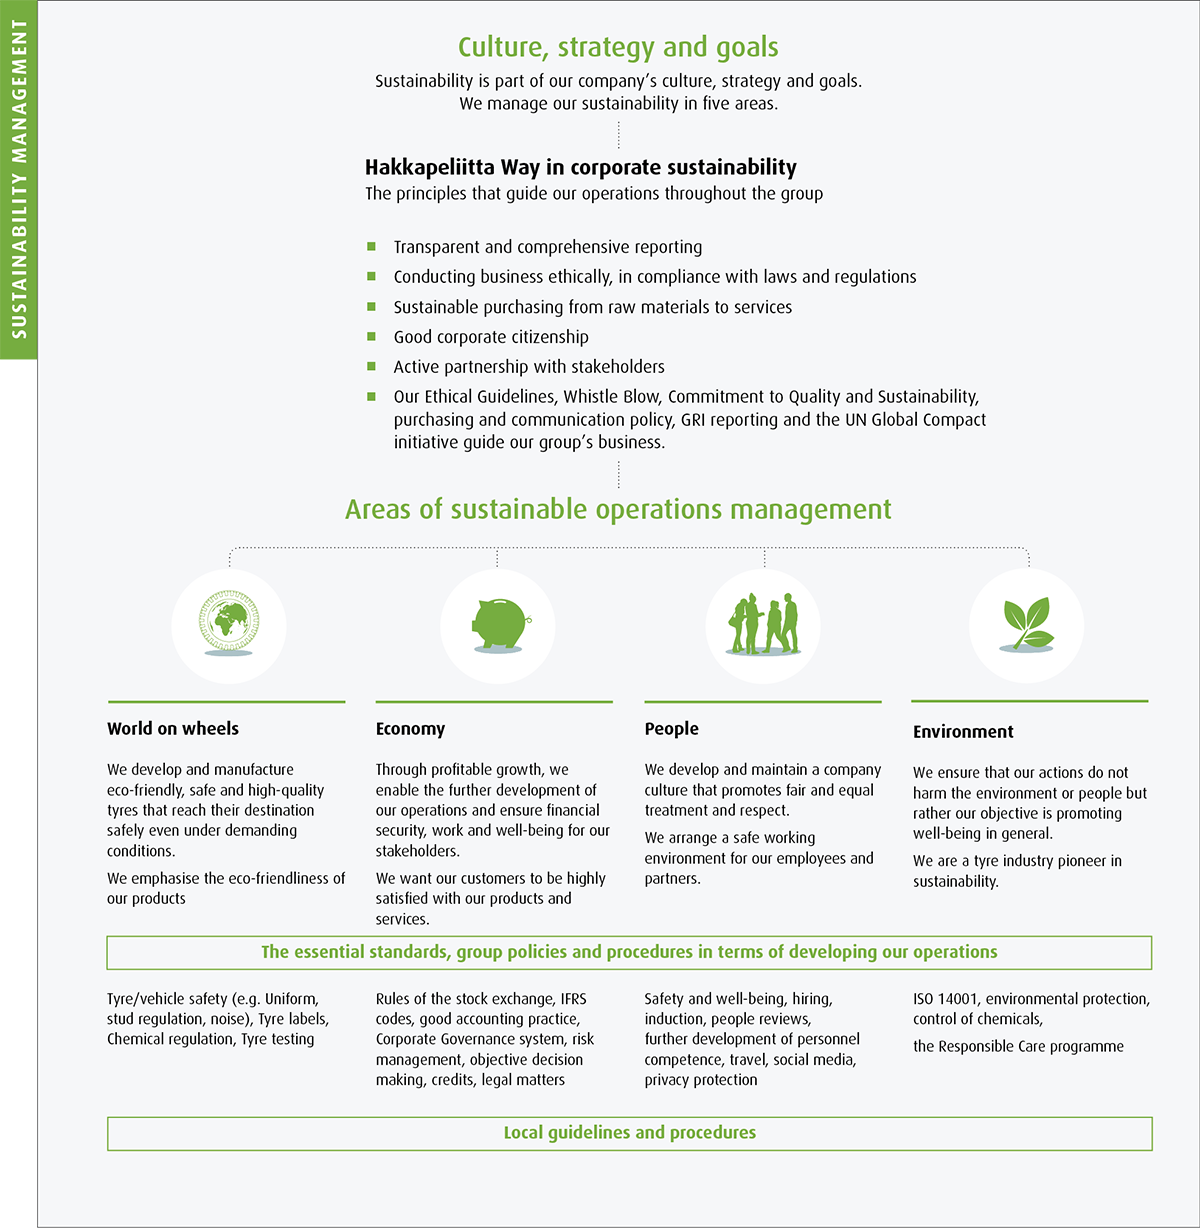 sustainability management nokian tyres also our commitment to quality and sustainability and learn more about the different areas of sustainability management and their materiality